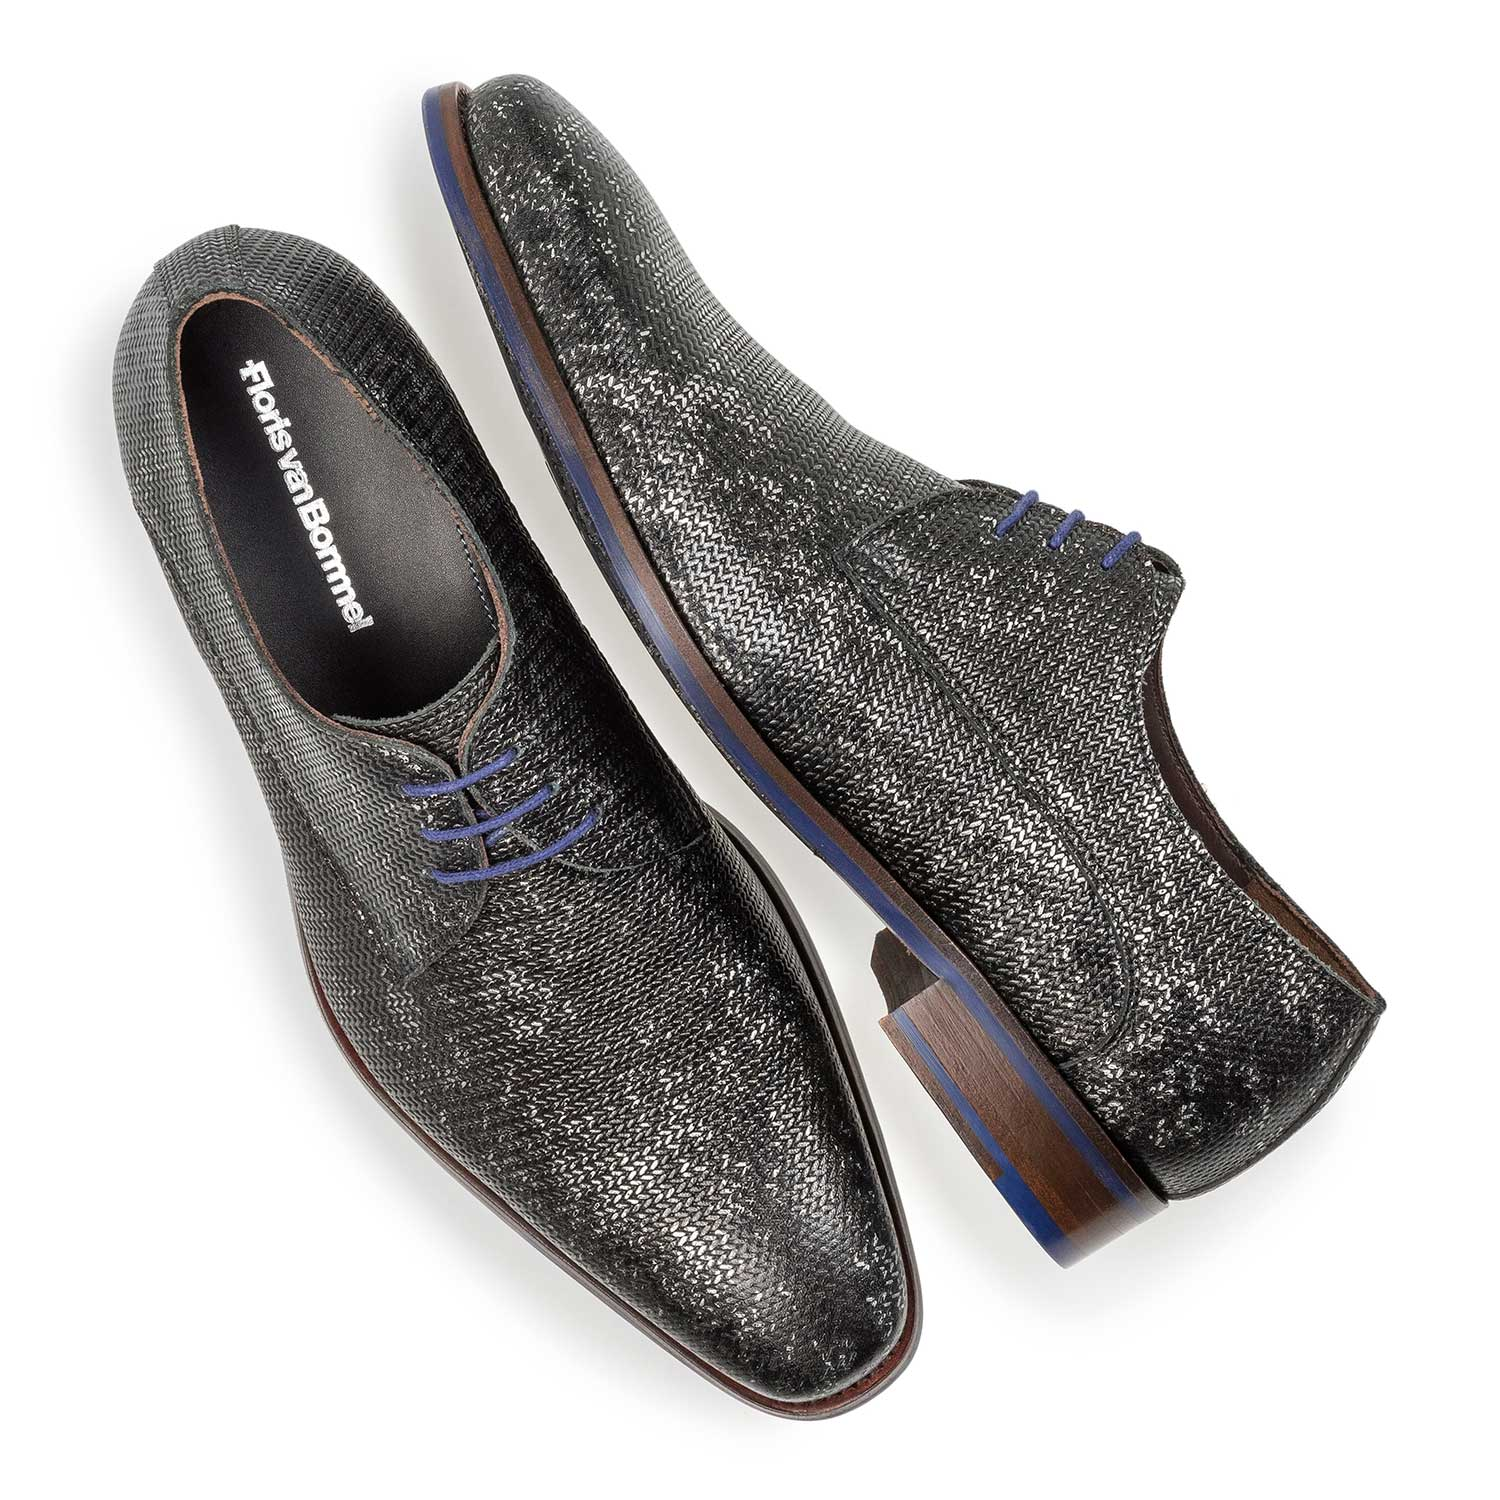 18159/00 - Dark grey leather lace shoe with metallic print